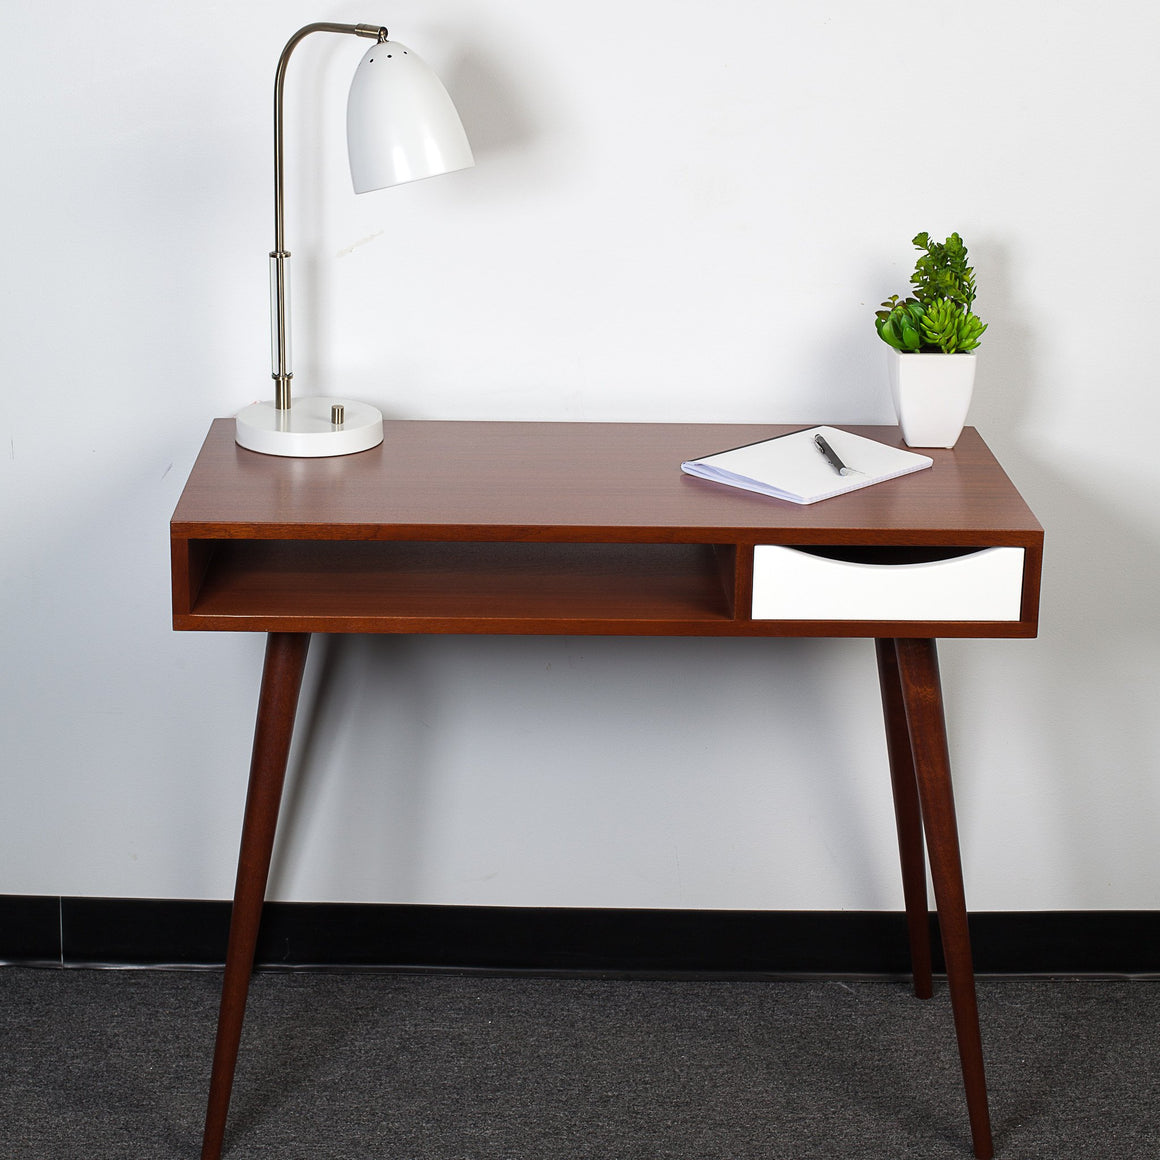 Mid-Century Modern Desk with Drawer - Flint Alley Furniture. Custom Handmade  Mid-Century Modern Furniture